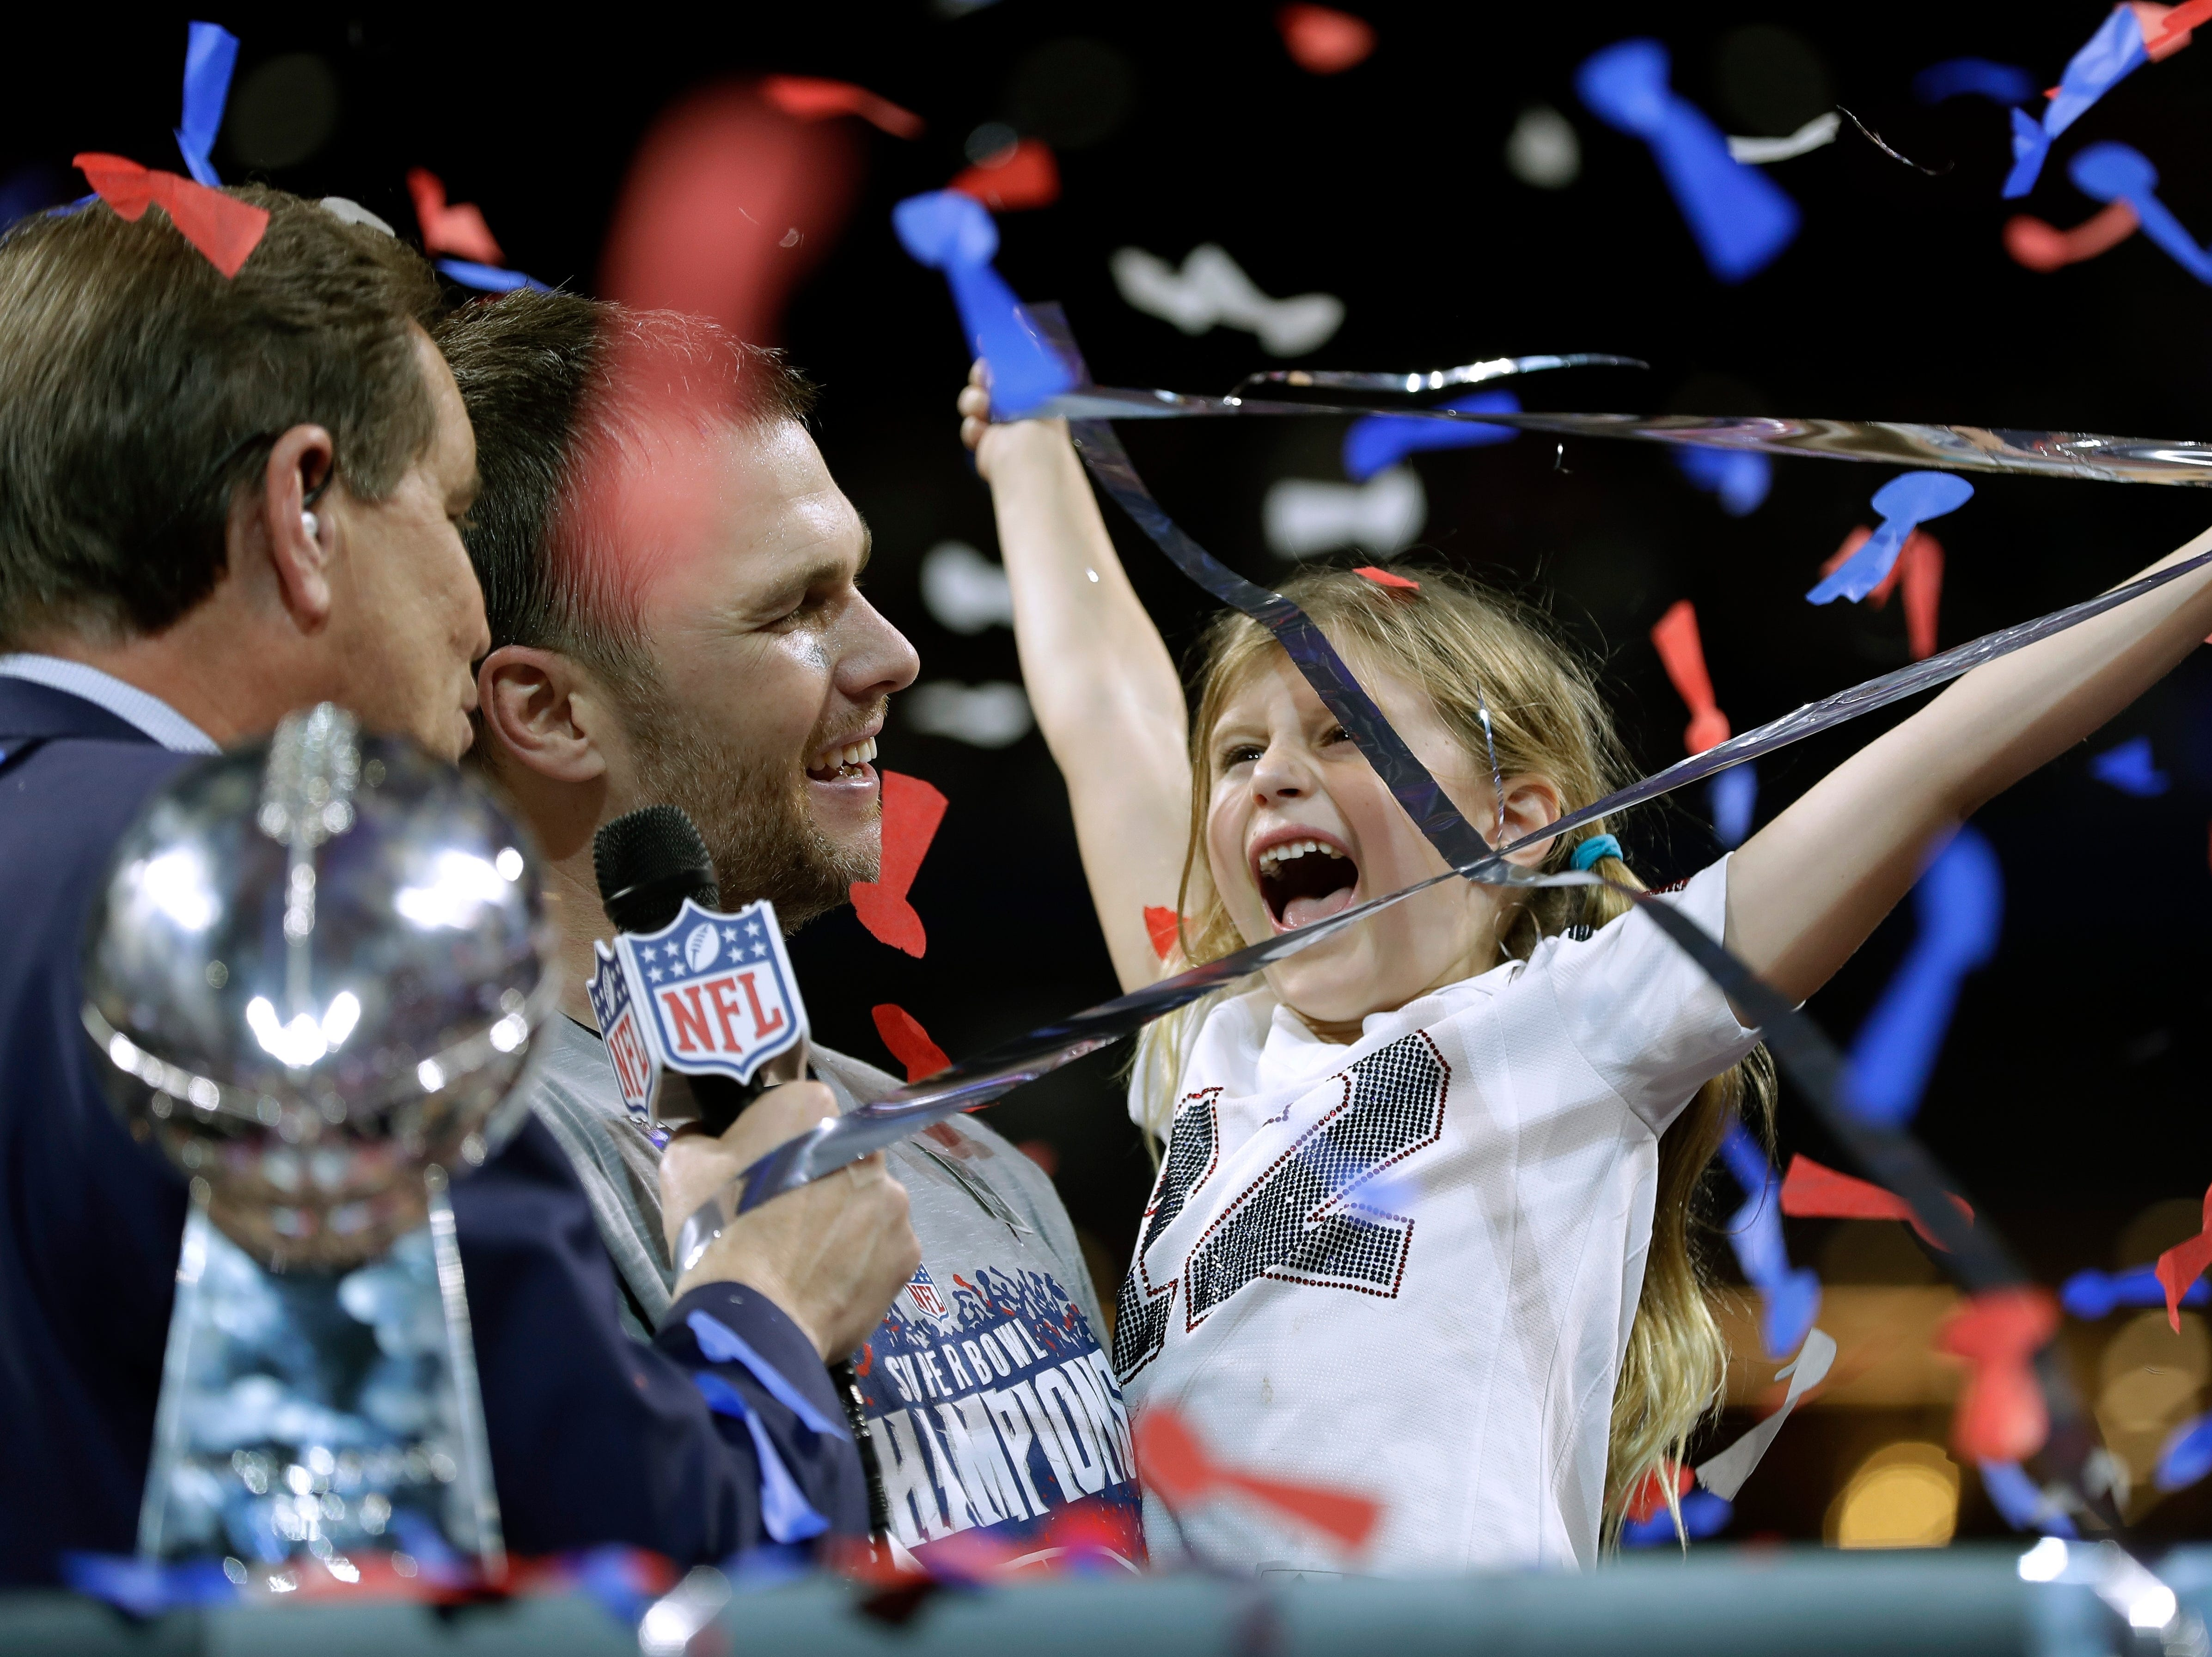 New England Patriots' Tom Brady celebrates with his daughter, Vivian, after the game.